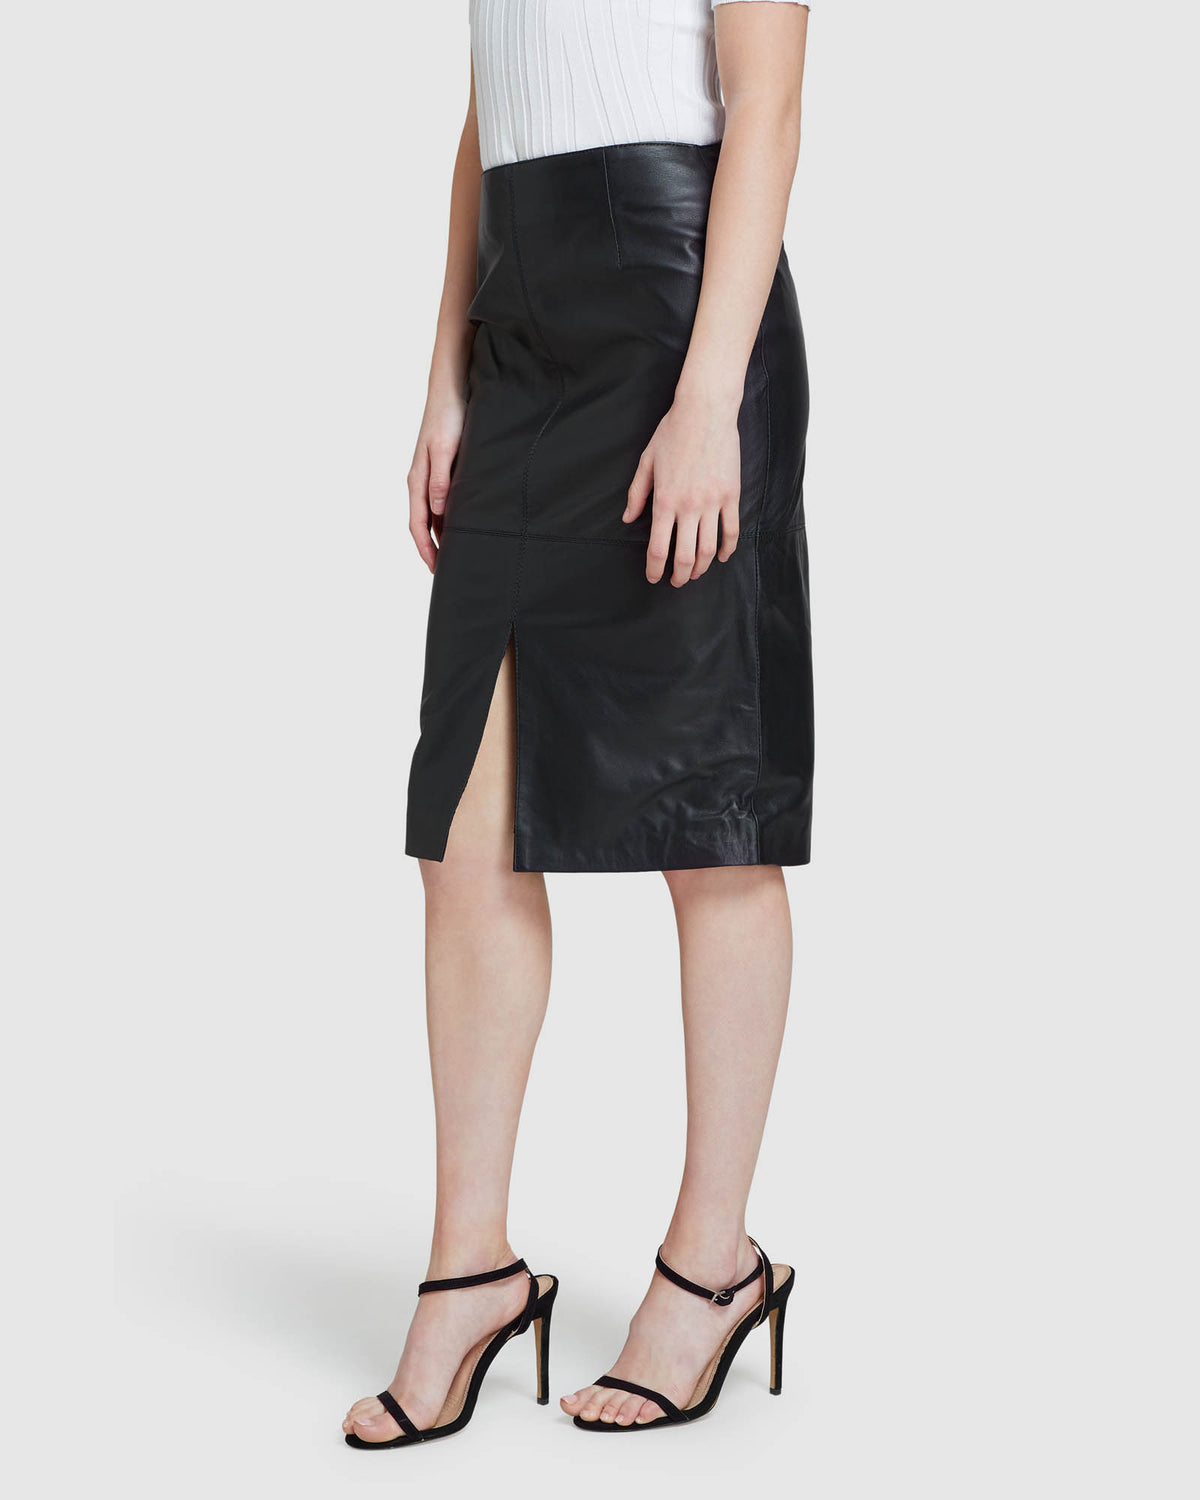 DARBY LEATHER PENCIL SKIRT